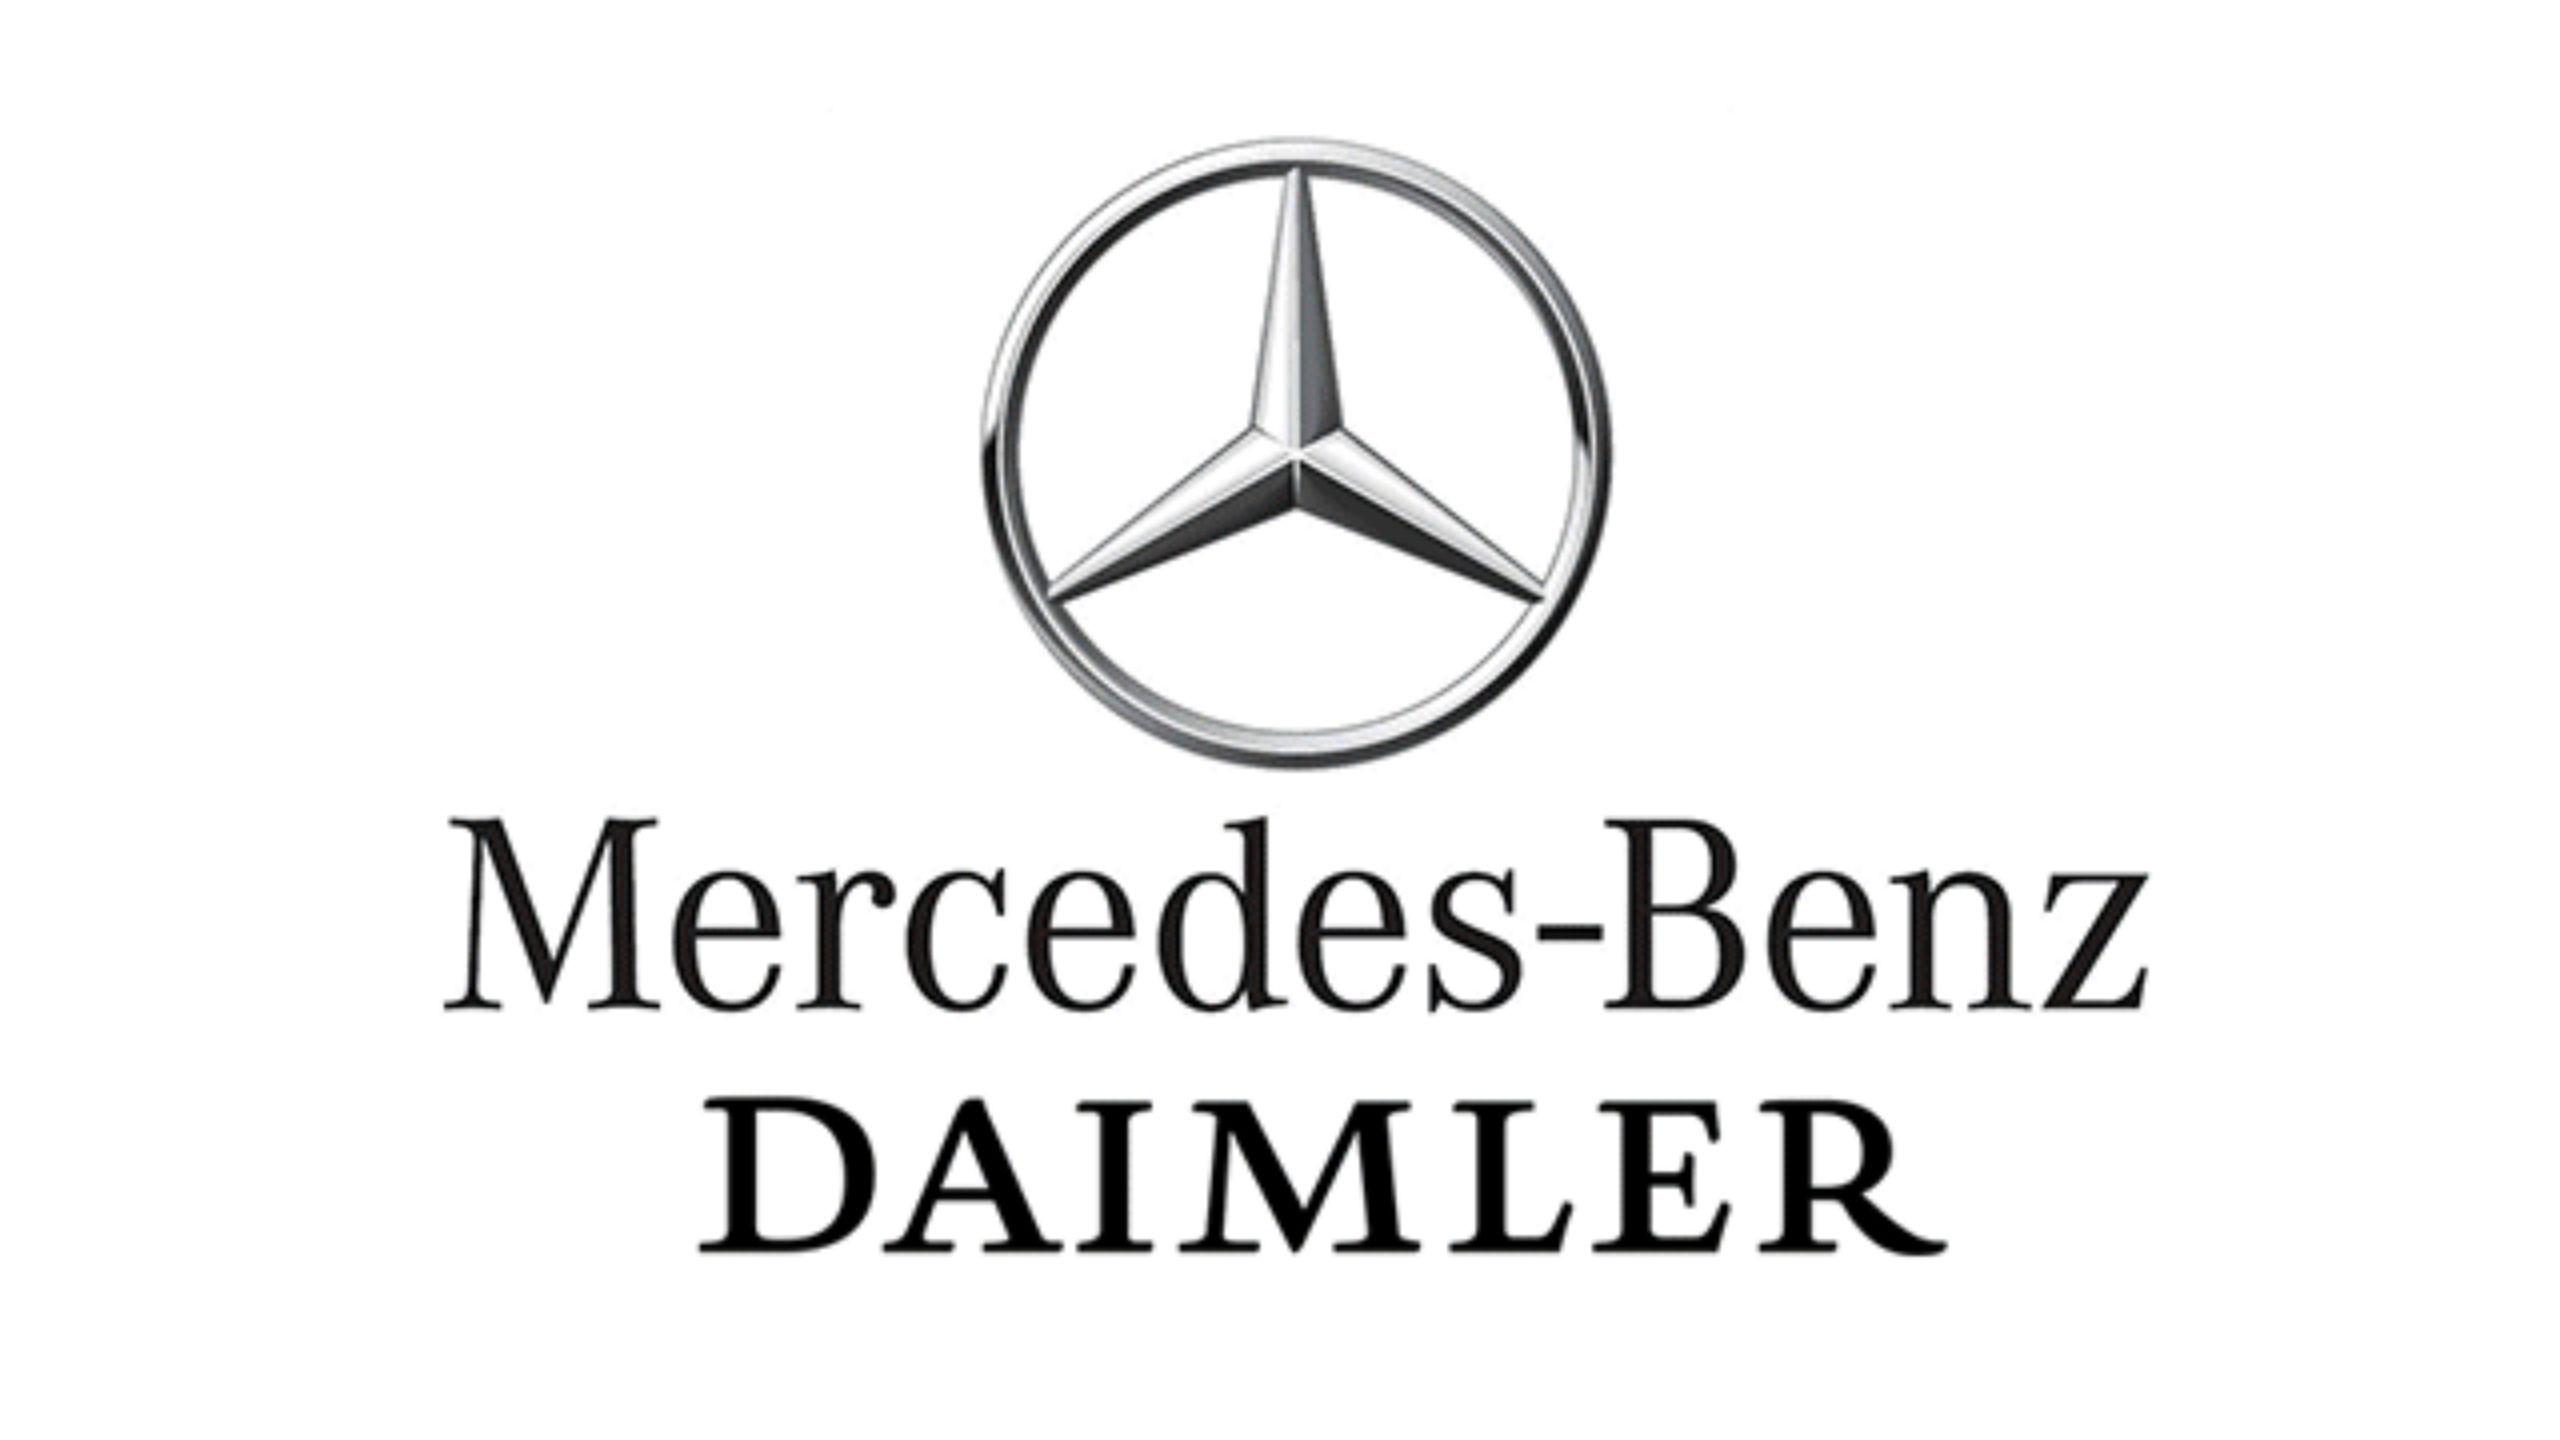 """""""In Formula 1 we can test hybrid technology and new fuels"""" - Daimler CEO reiterates desire to continue in F1 with Mercedes"""